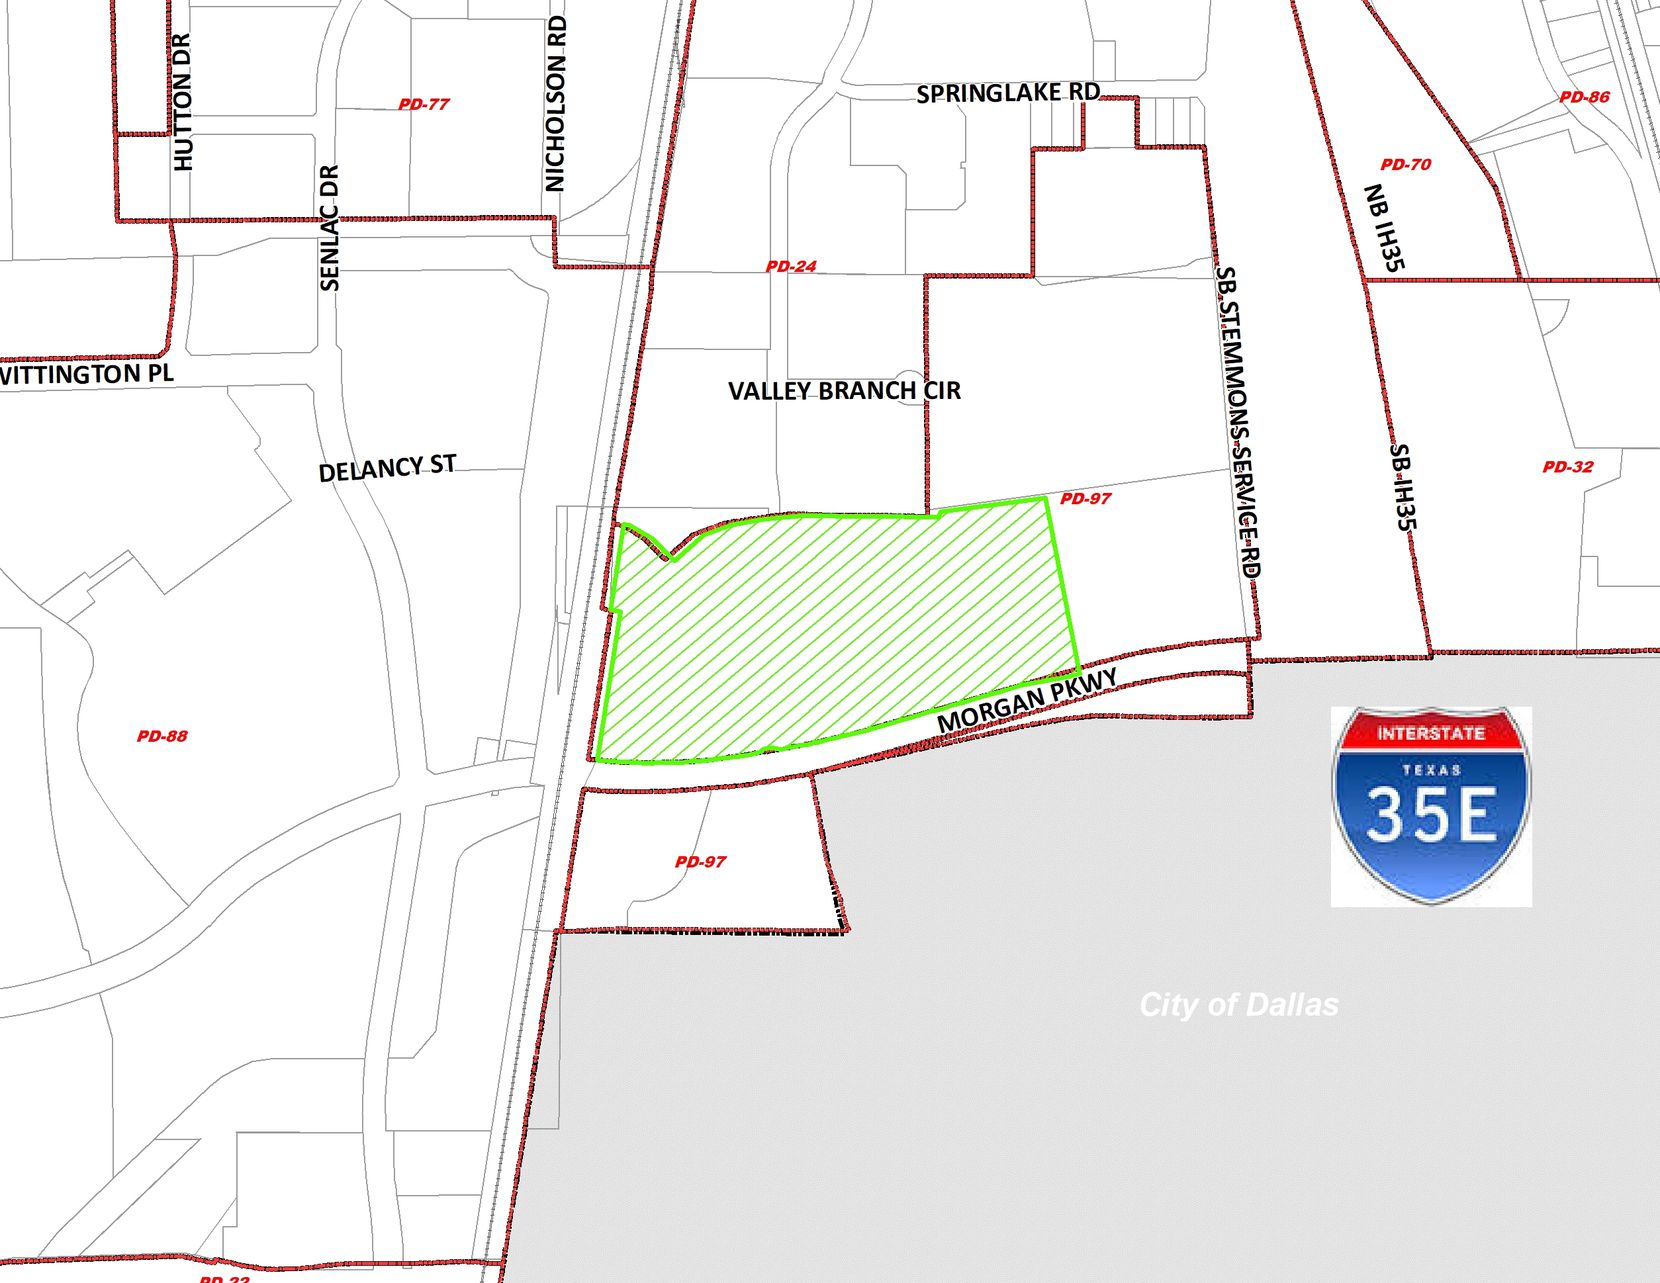 Billingsley is planning the warehouse for a site just west of I-35E.